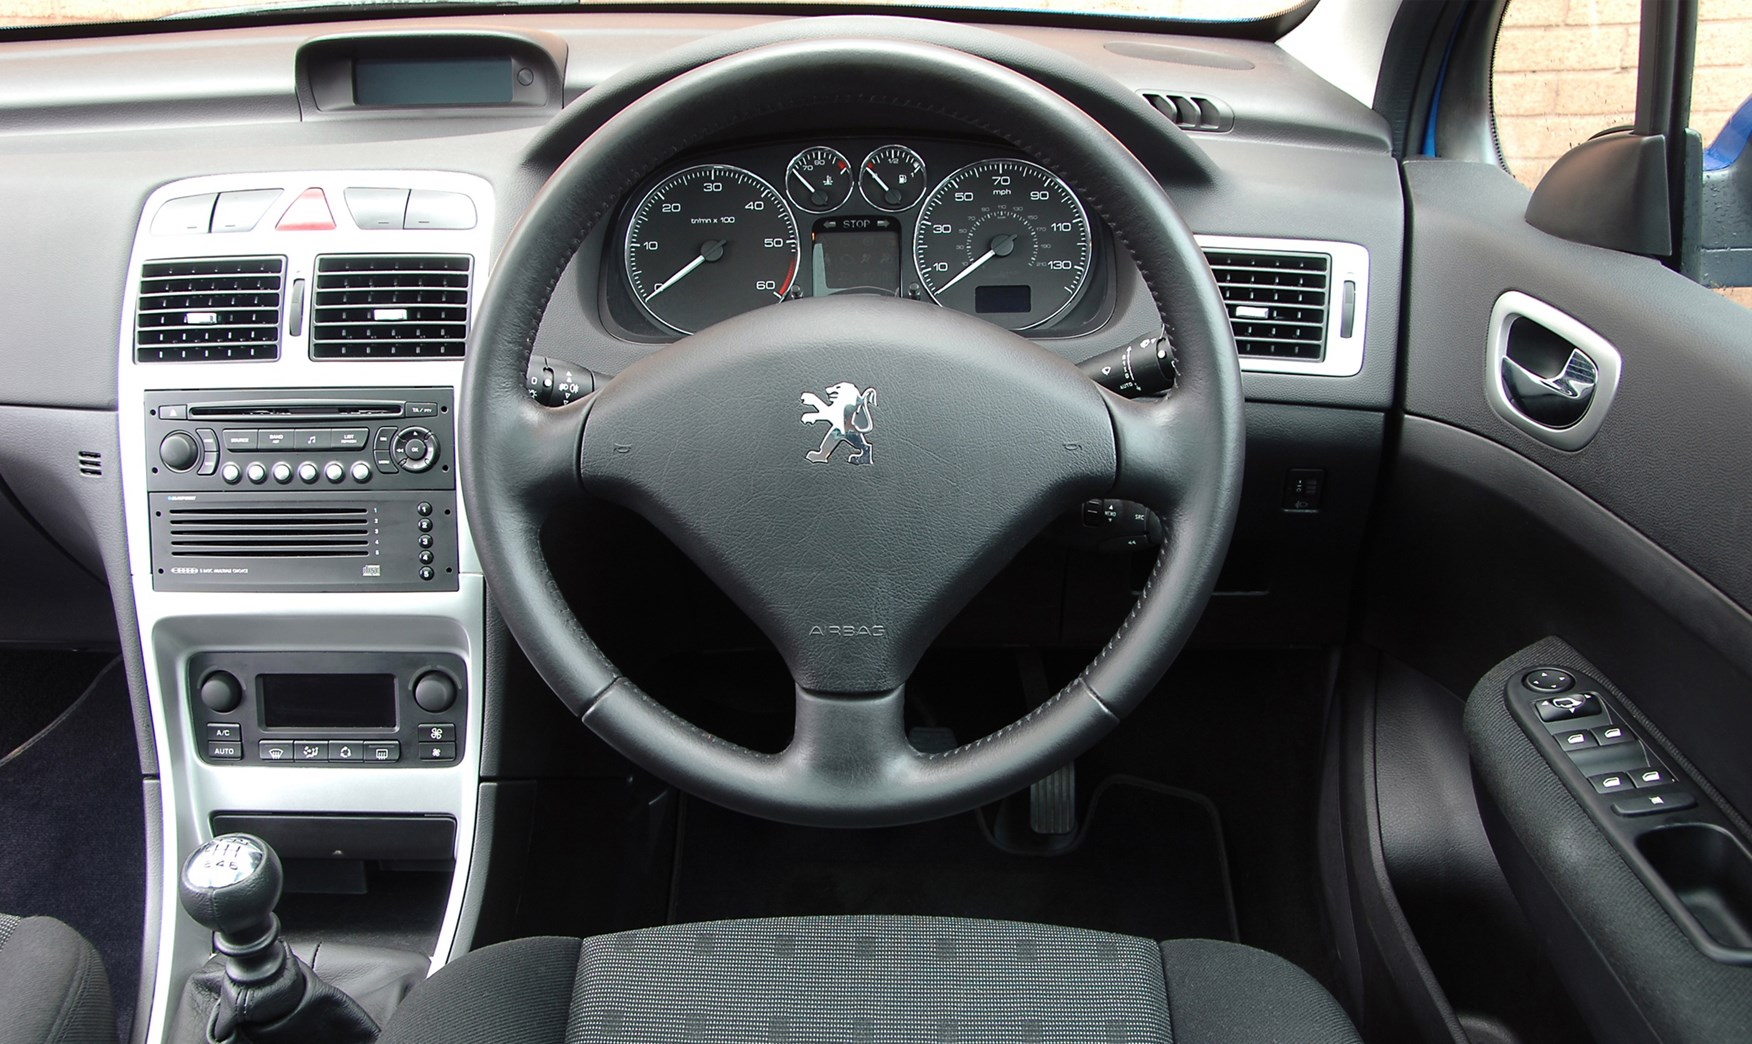 Peugeot 307 SW (2002 - 2007) Features, Equipment and Accessories ...